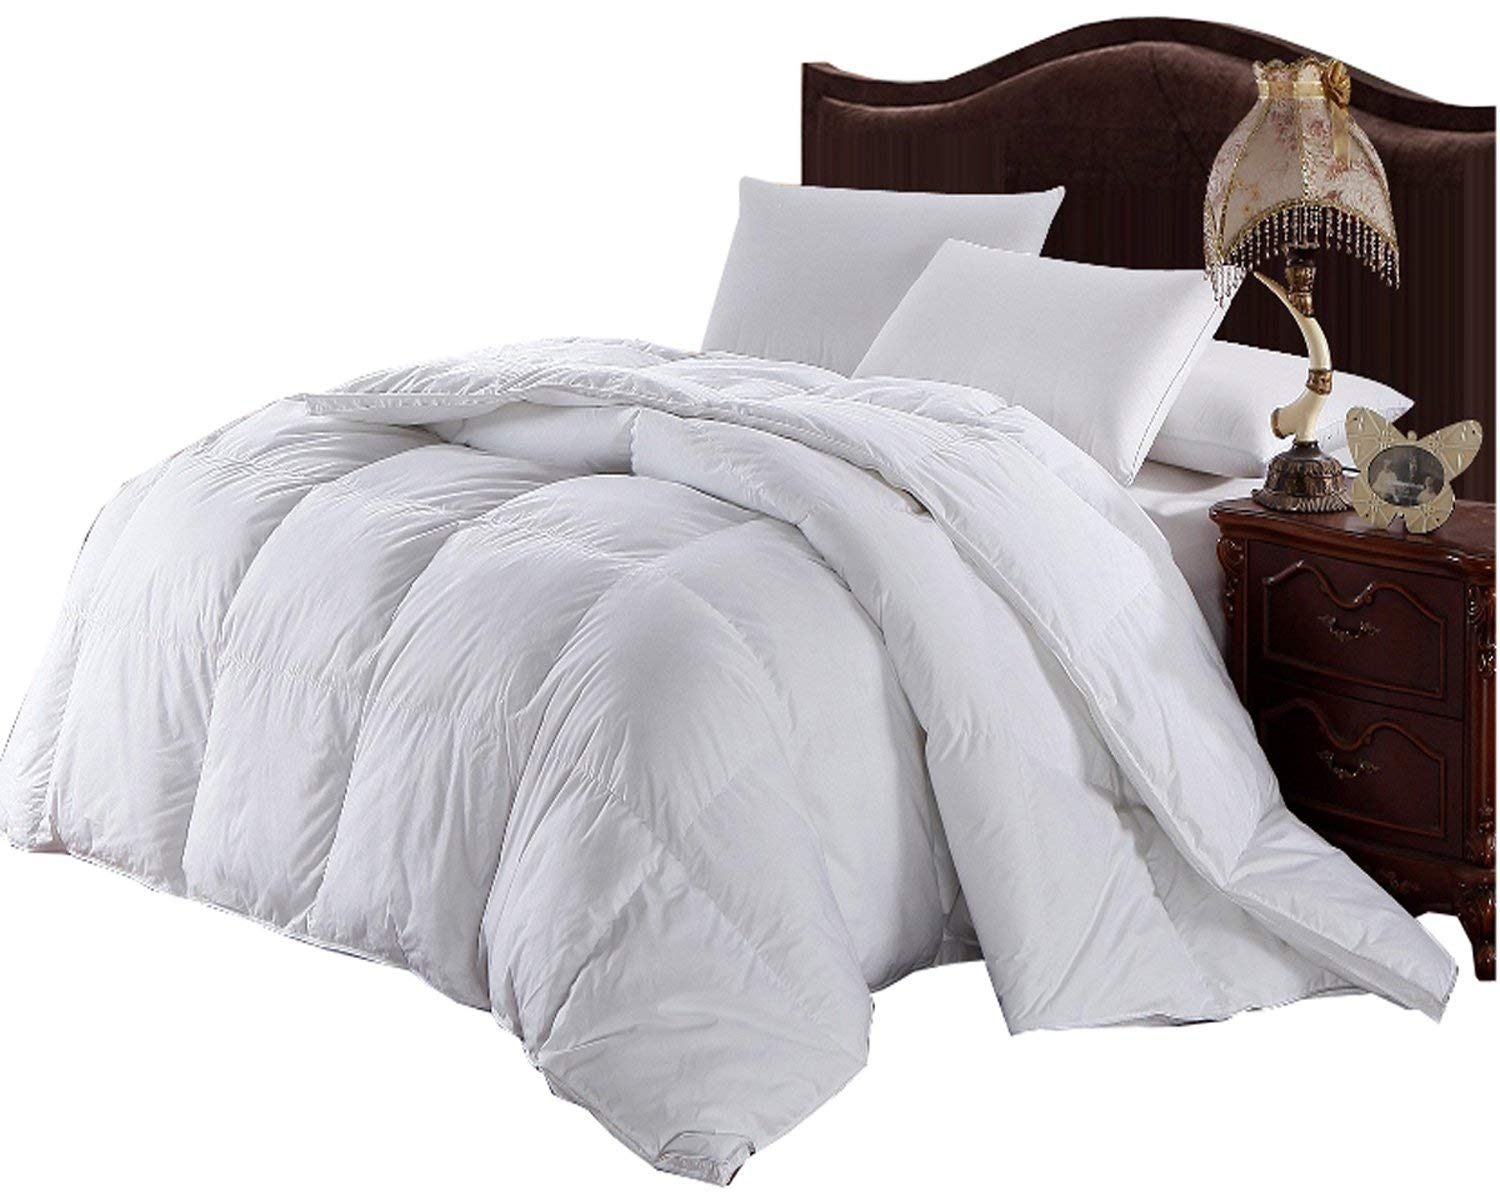 Get Quotations Royal Tradition Over Size King Baffle Box Hungarian White Down Alternative Comforter 110 Wide X